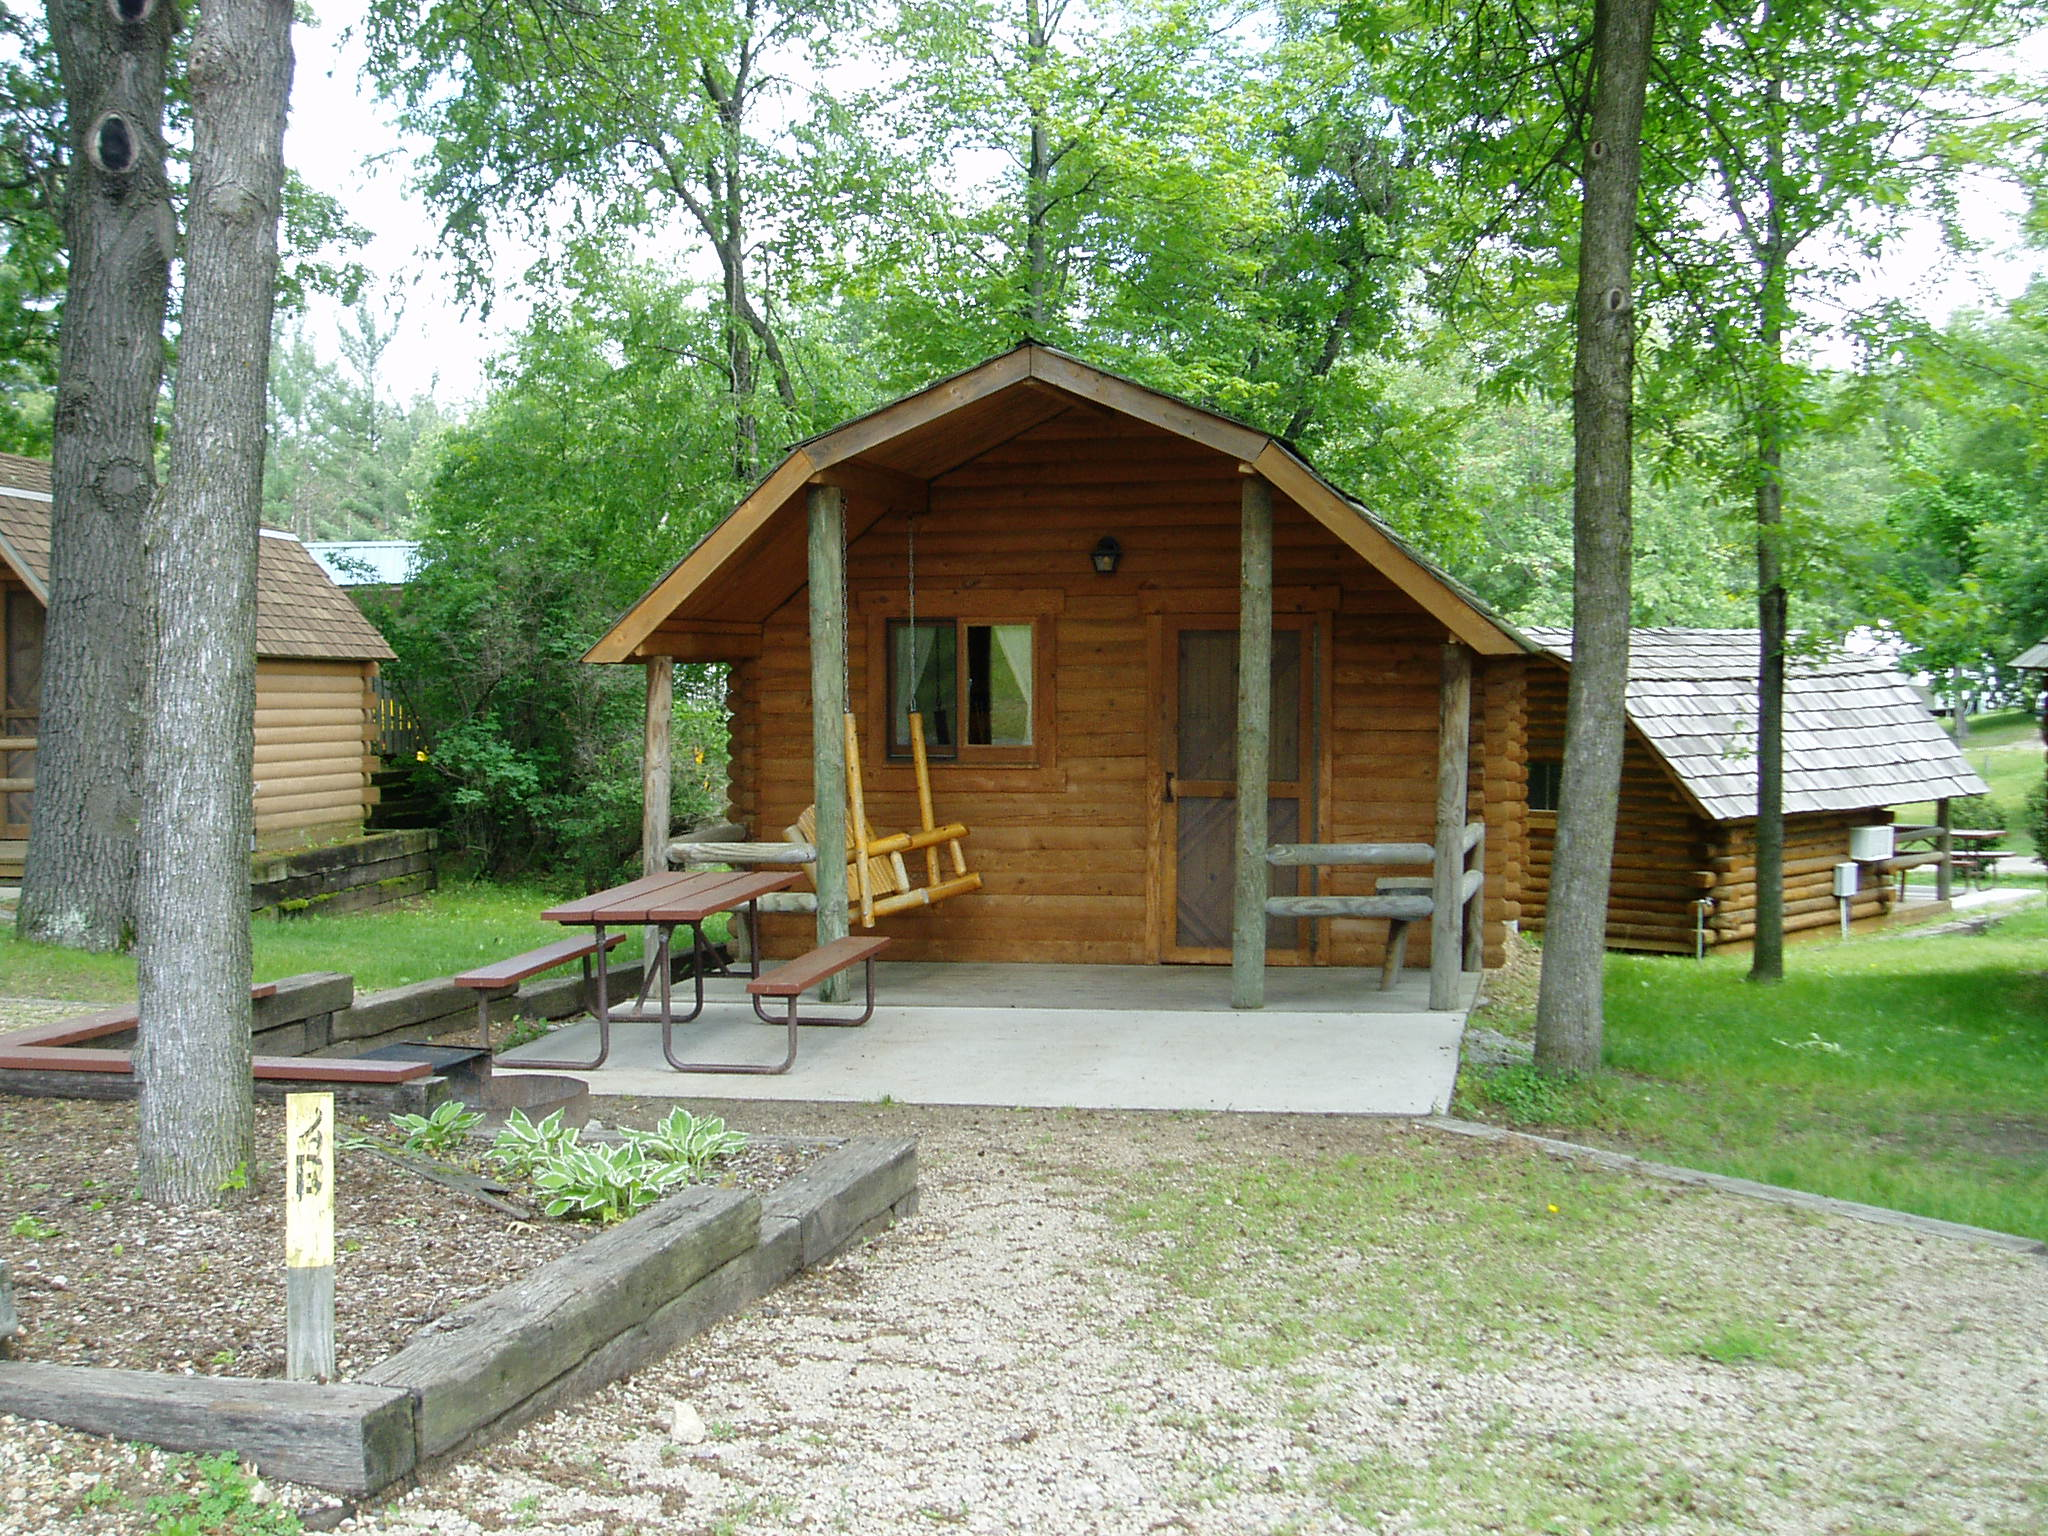 wisconsin cabin cabins pool a comfortable dells with camping midwest near baraboo shared unitedstatesofamerica